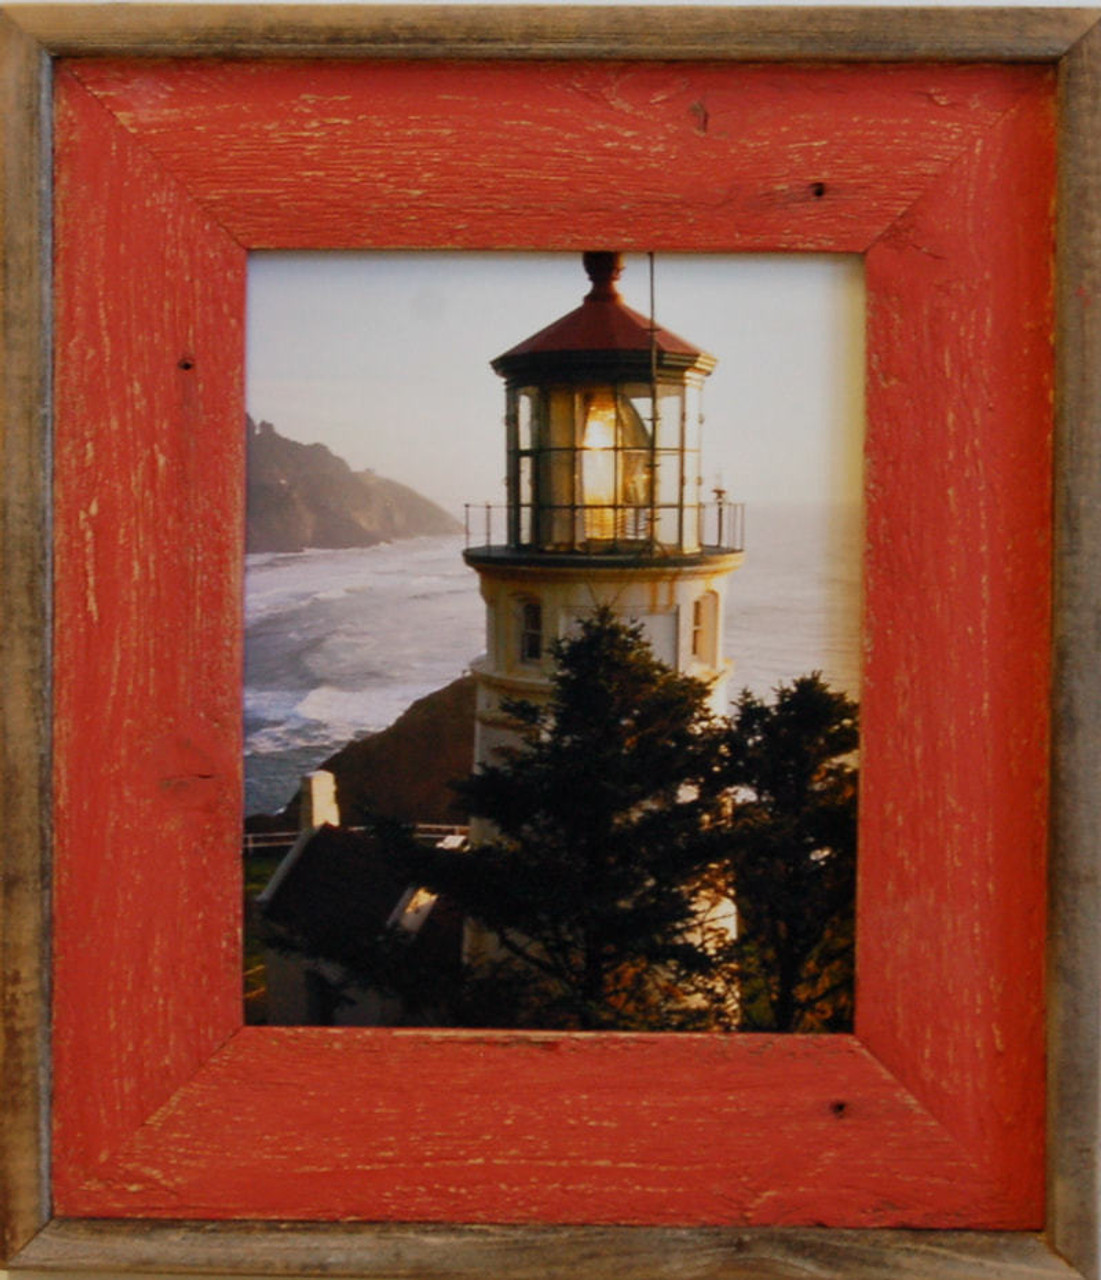 4x6 Barnwood Picture Frame Lighthouse Red Distressed Wood Frame